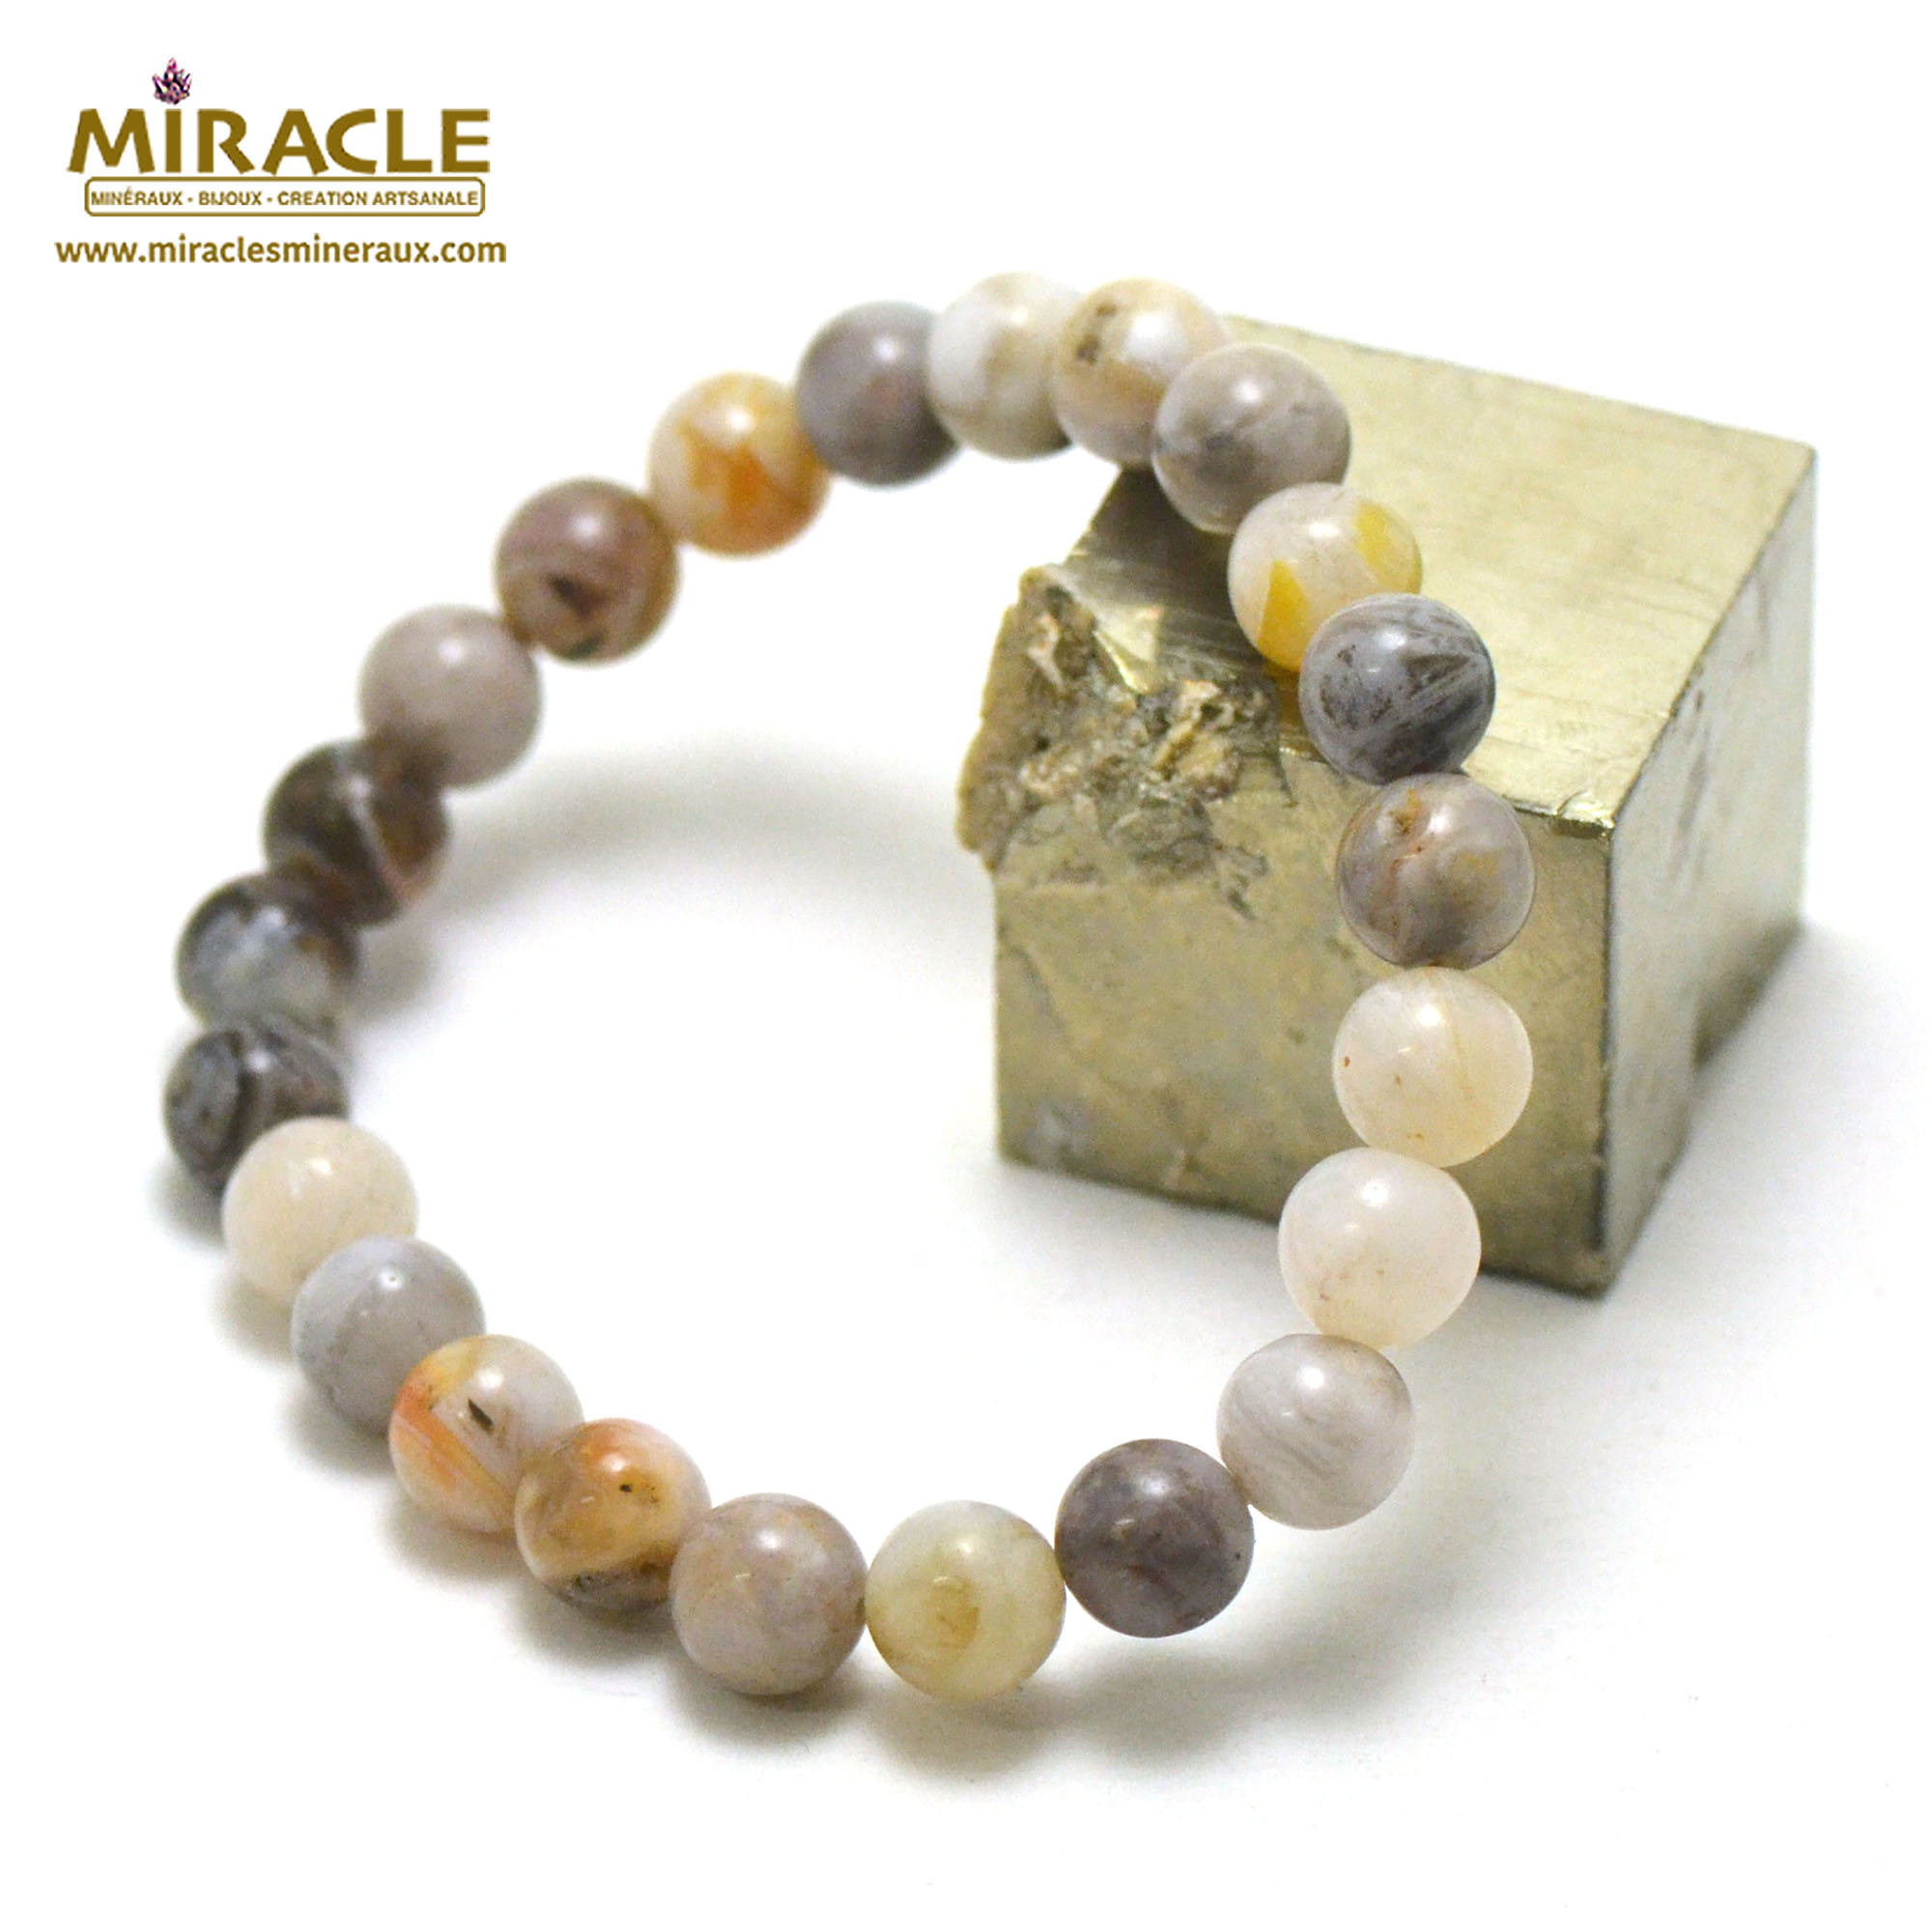 Bracelet agate bambou, perles rond 8 mm